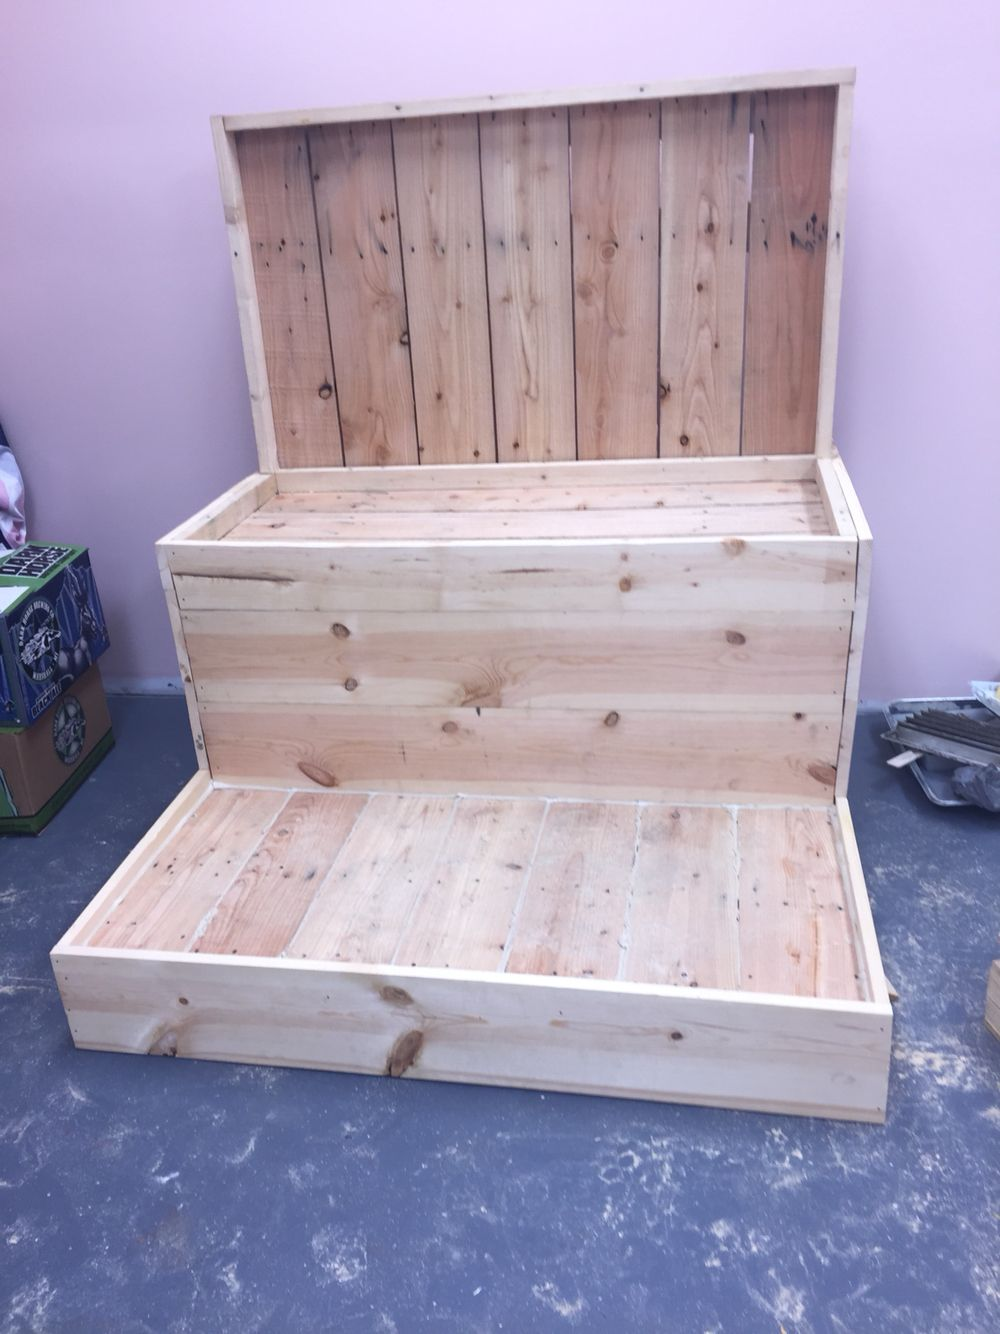 New Pedicure Throne Being Built For Me. …